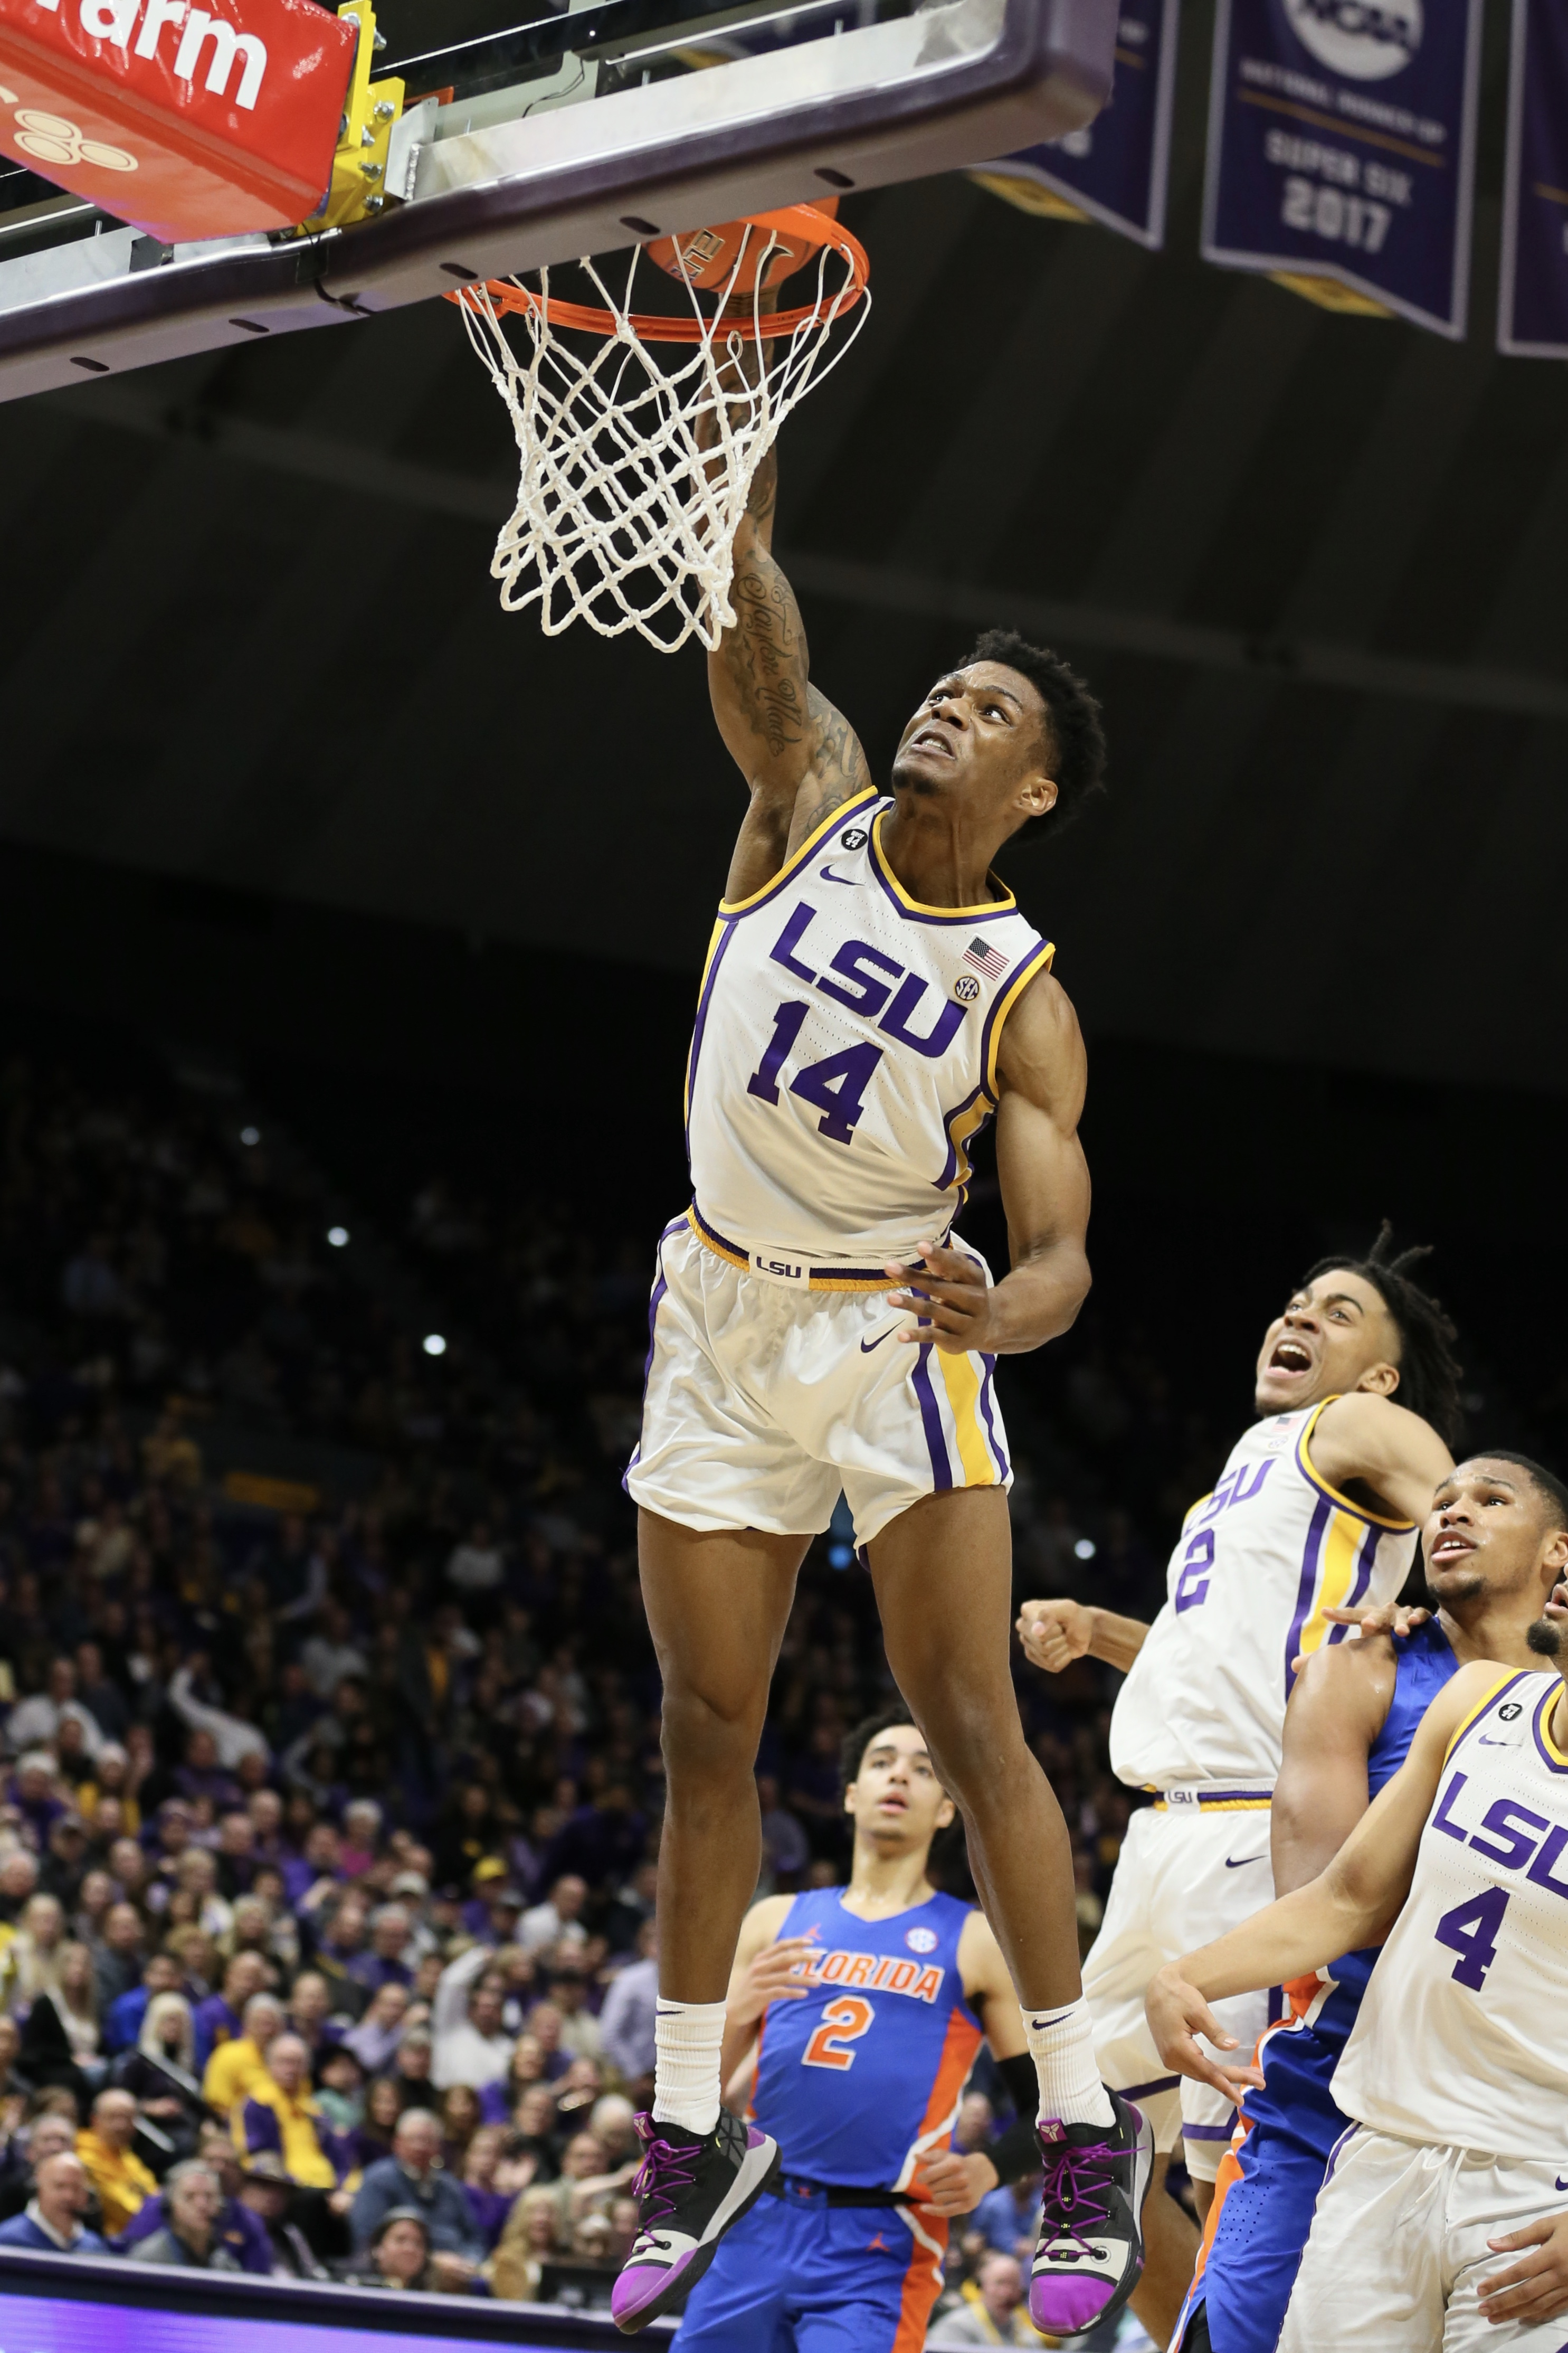 Lucky Or Good Lsu Is A Bit Of Both In A 2 Point Win Over Florida To Stay Atop The Sec